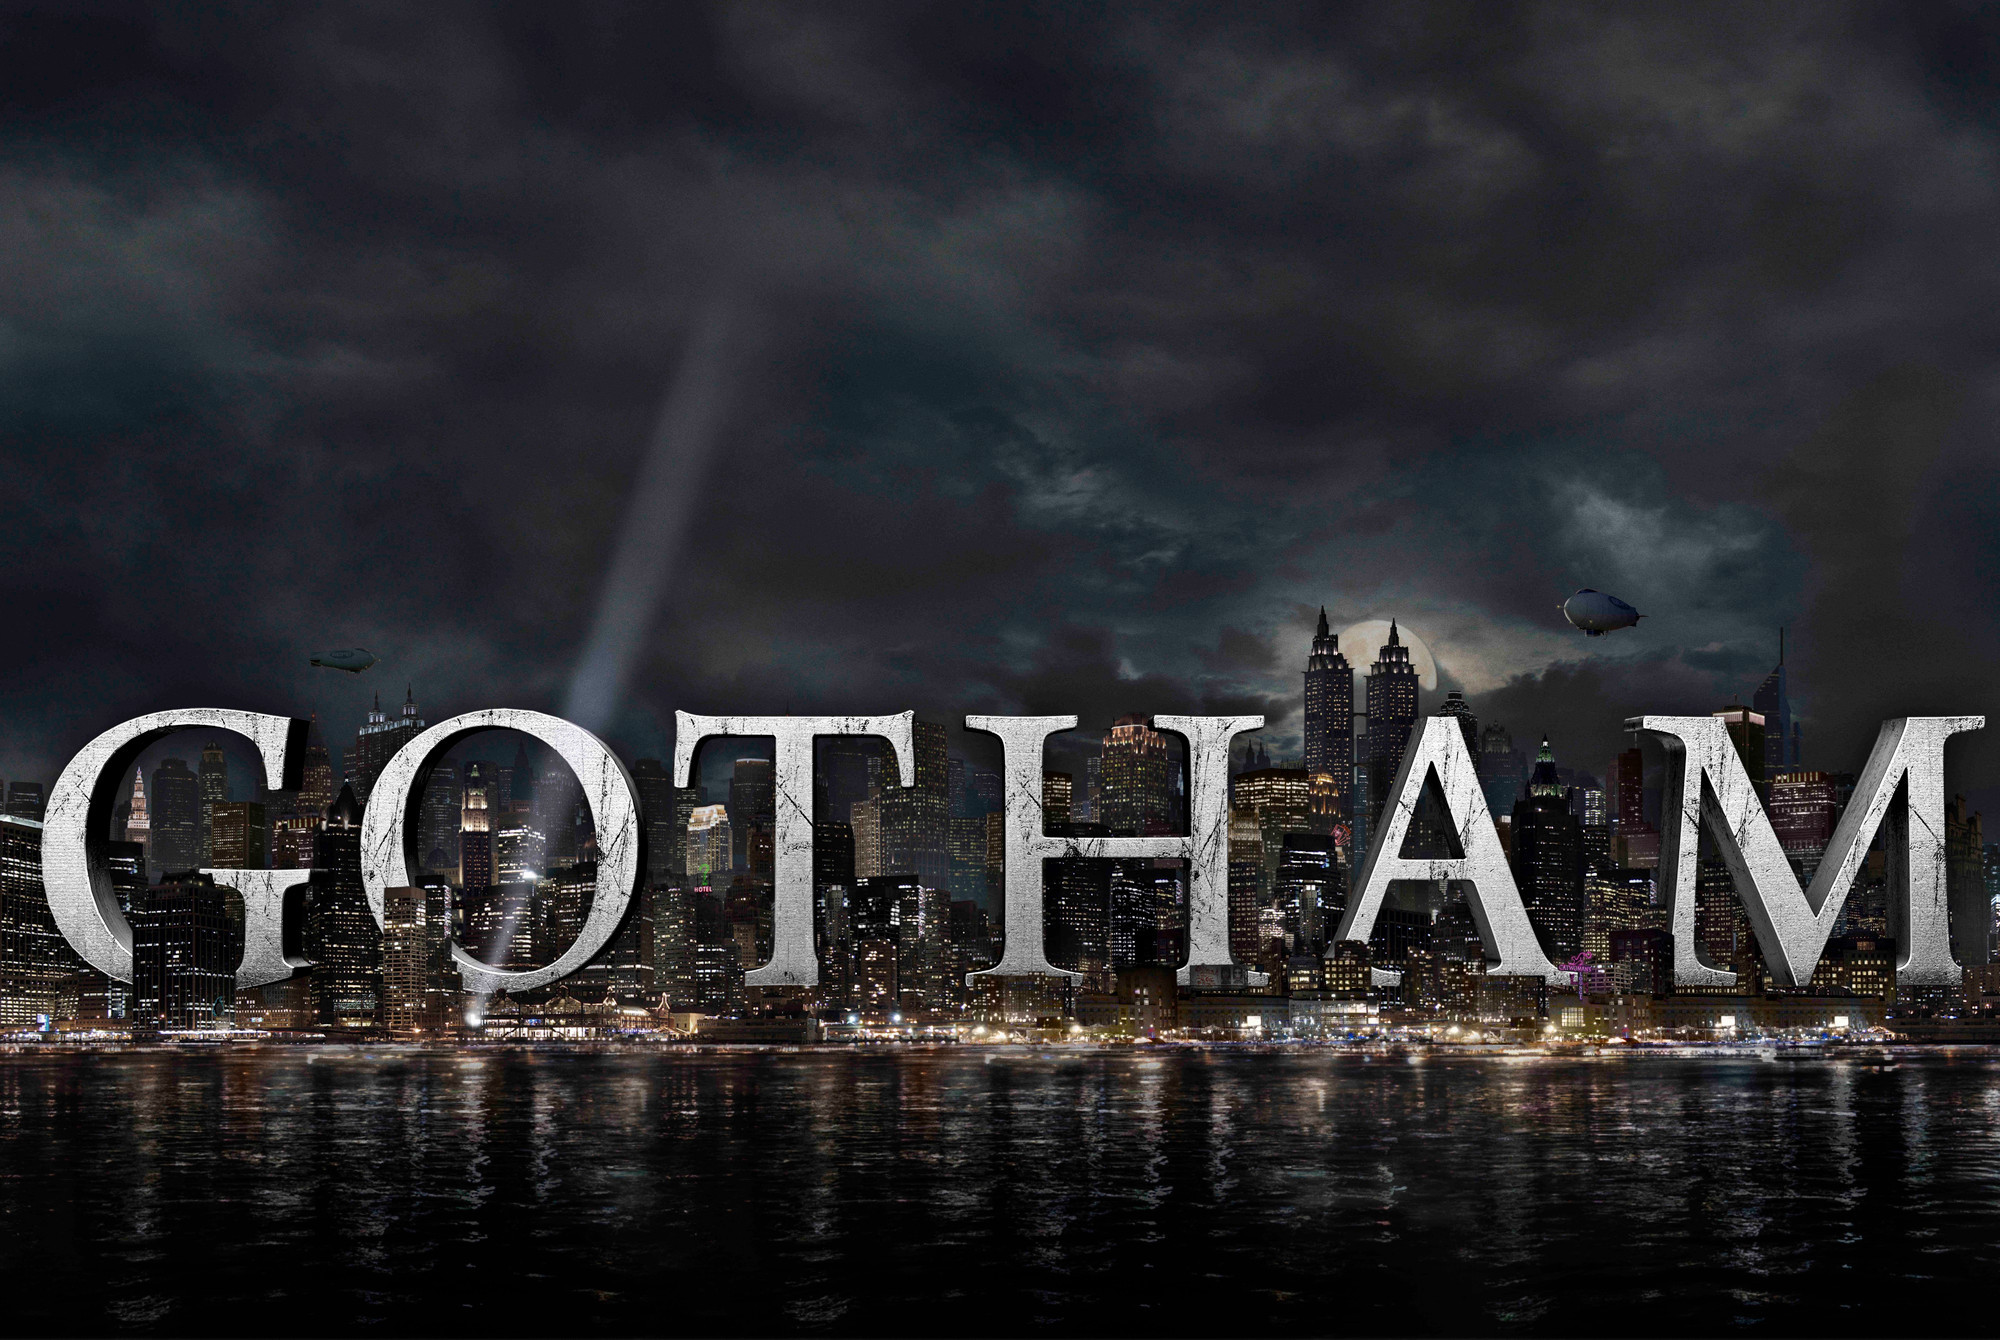 How real New York spots turn gritty for 'Gotham'